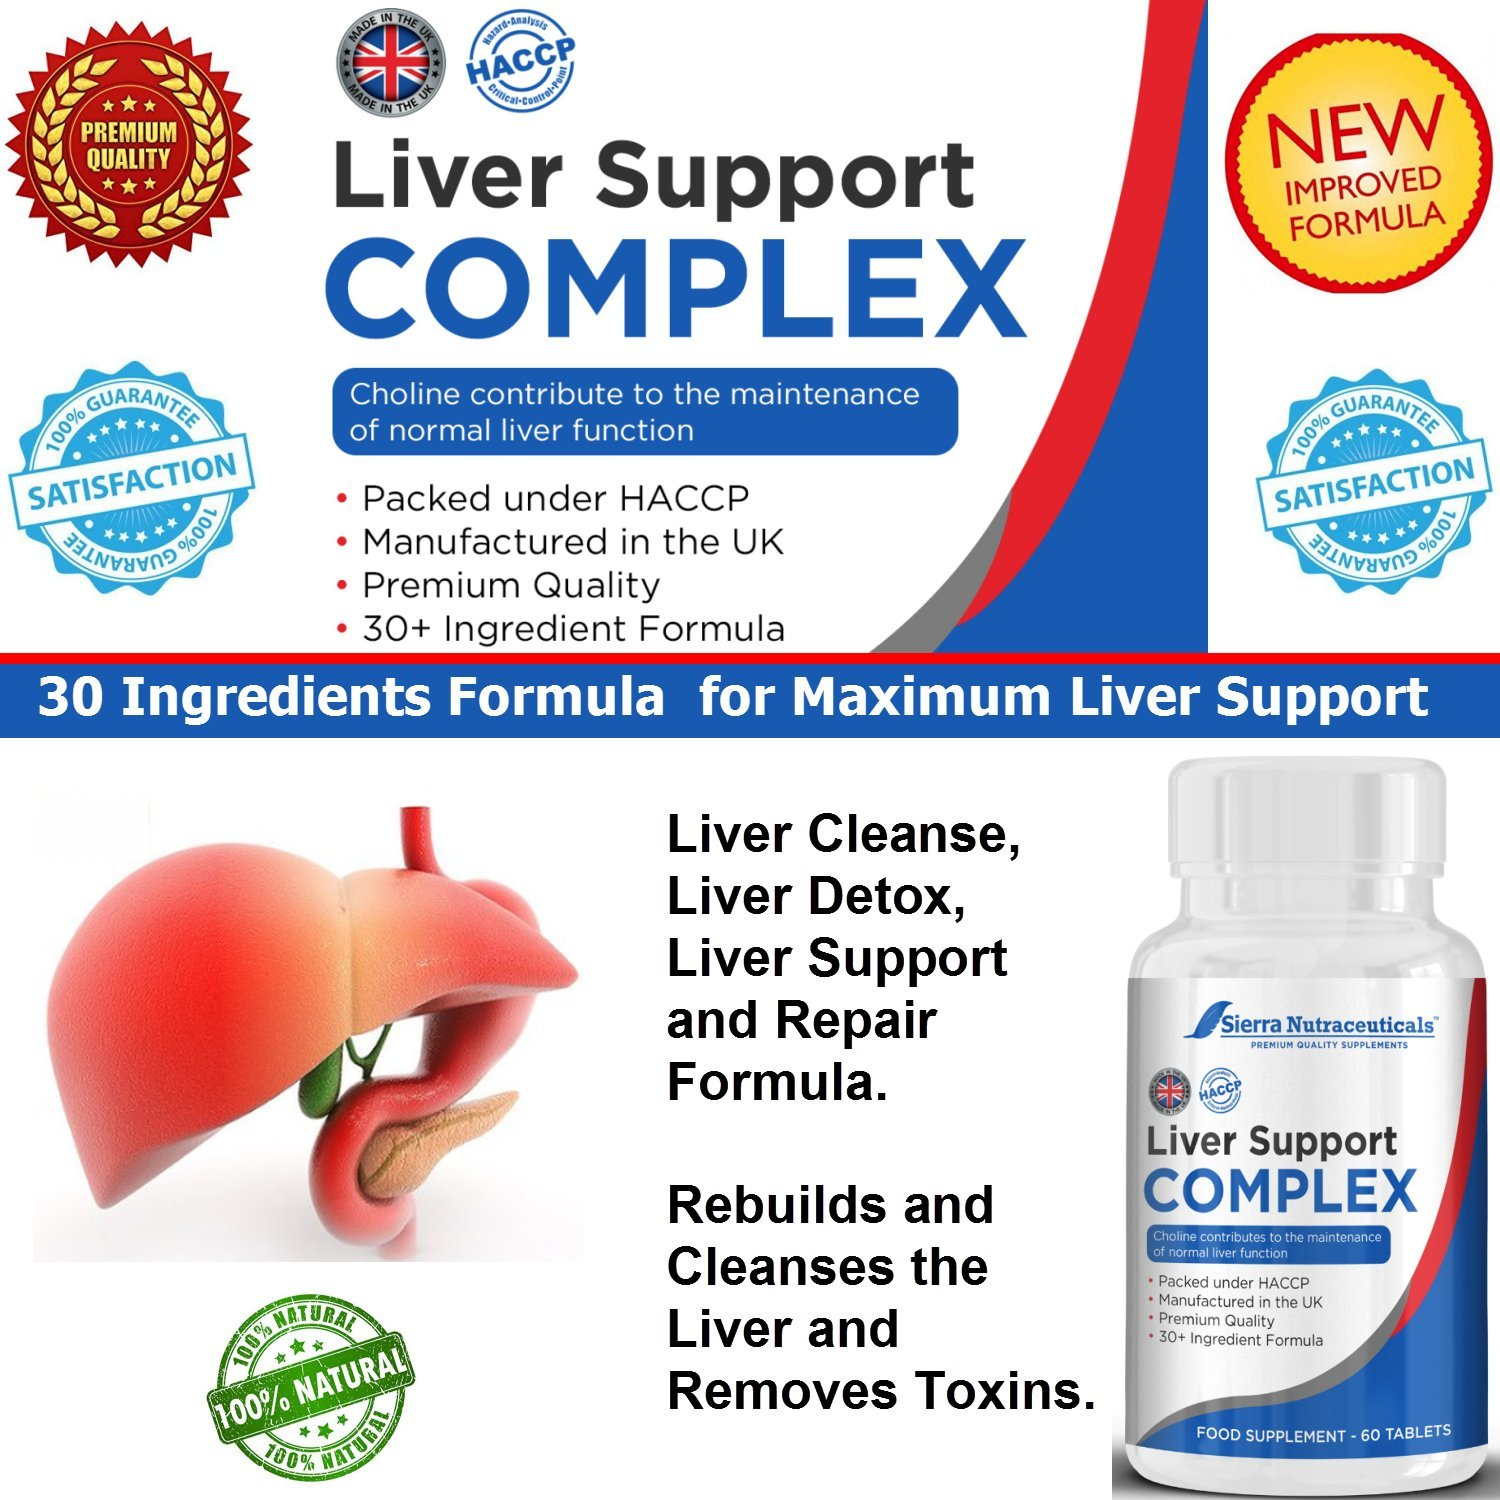 1 Premium Liver Cleanse Liver Detox Liver Support And Repair